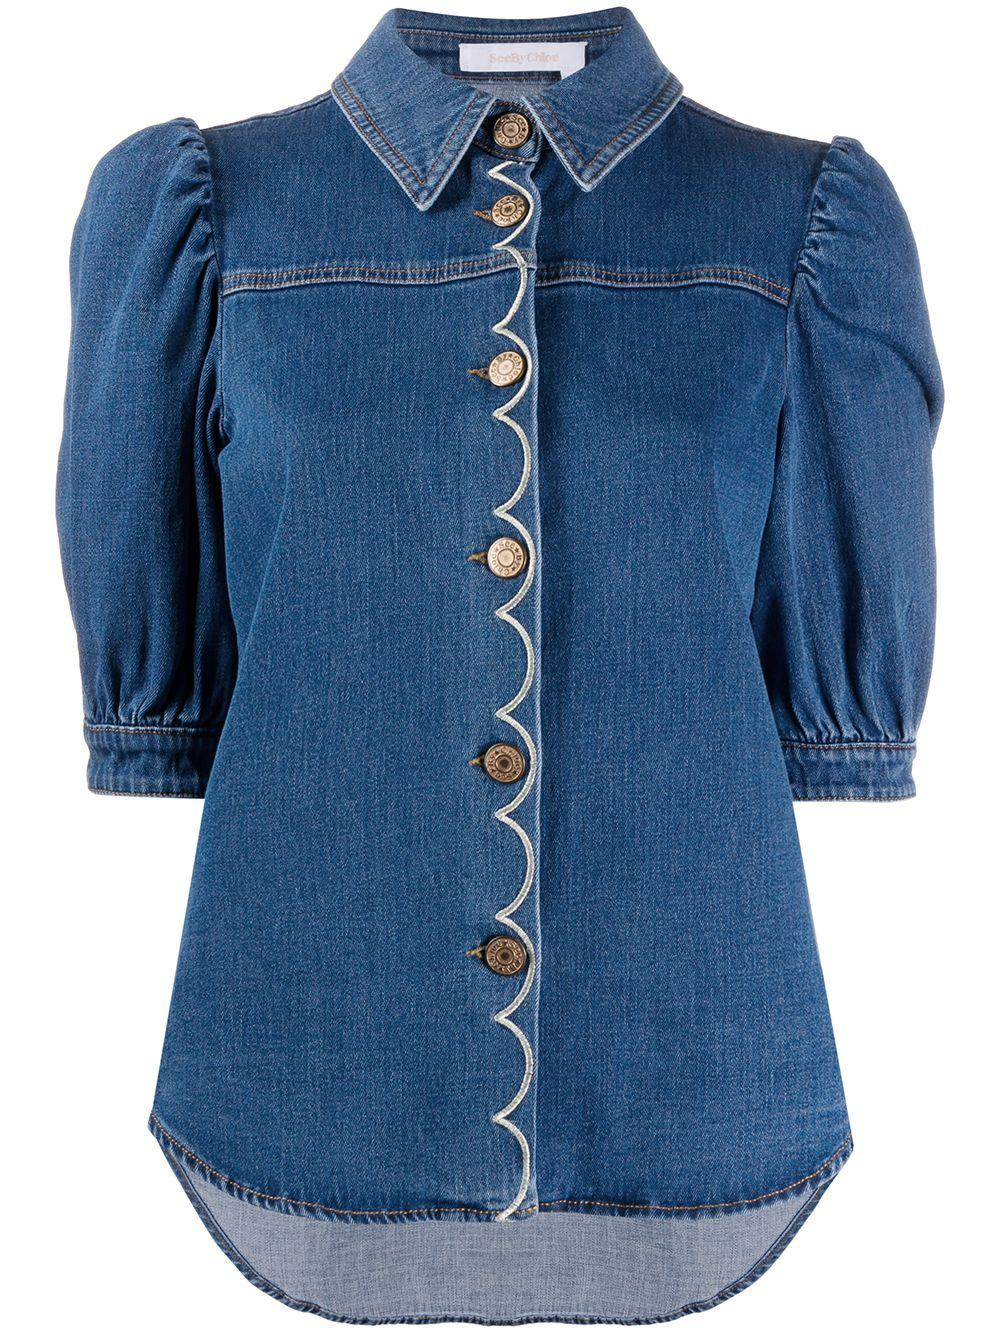 Denim Top With Embroidery